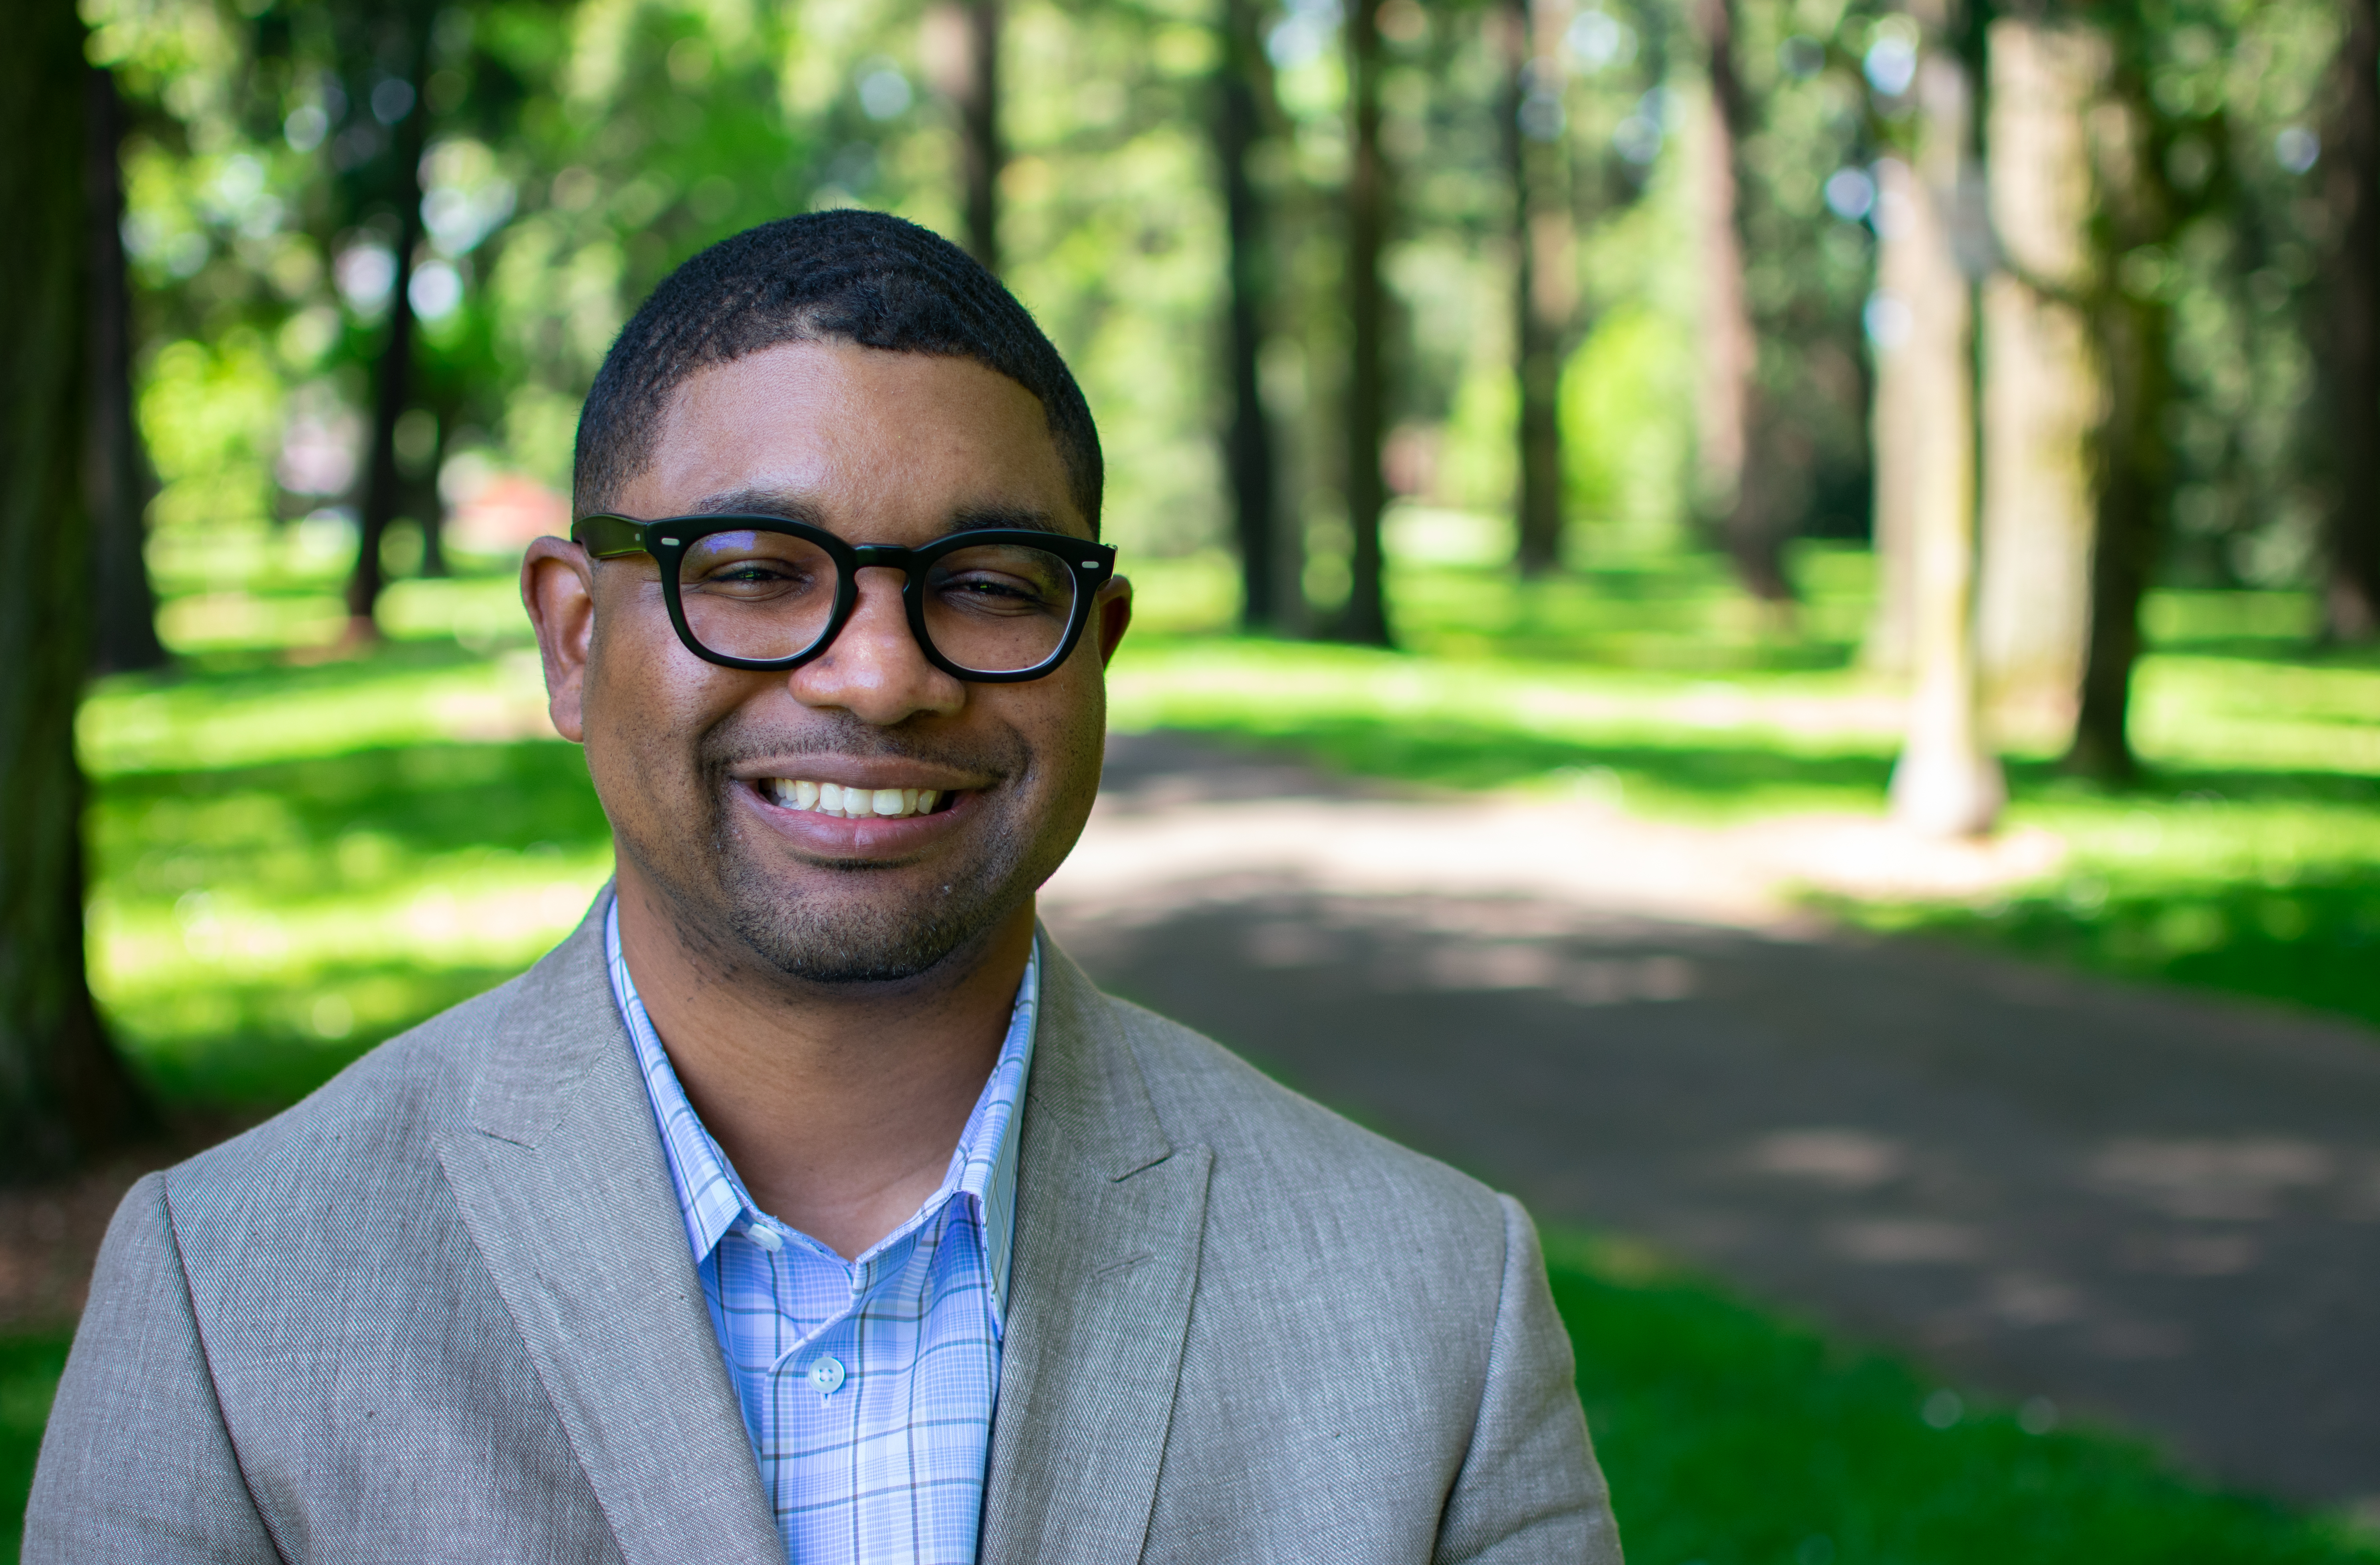 Terry Johnson is executive director of Open School NW in Portland, Oregon, a college-prep school for at-risk students.